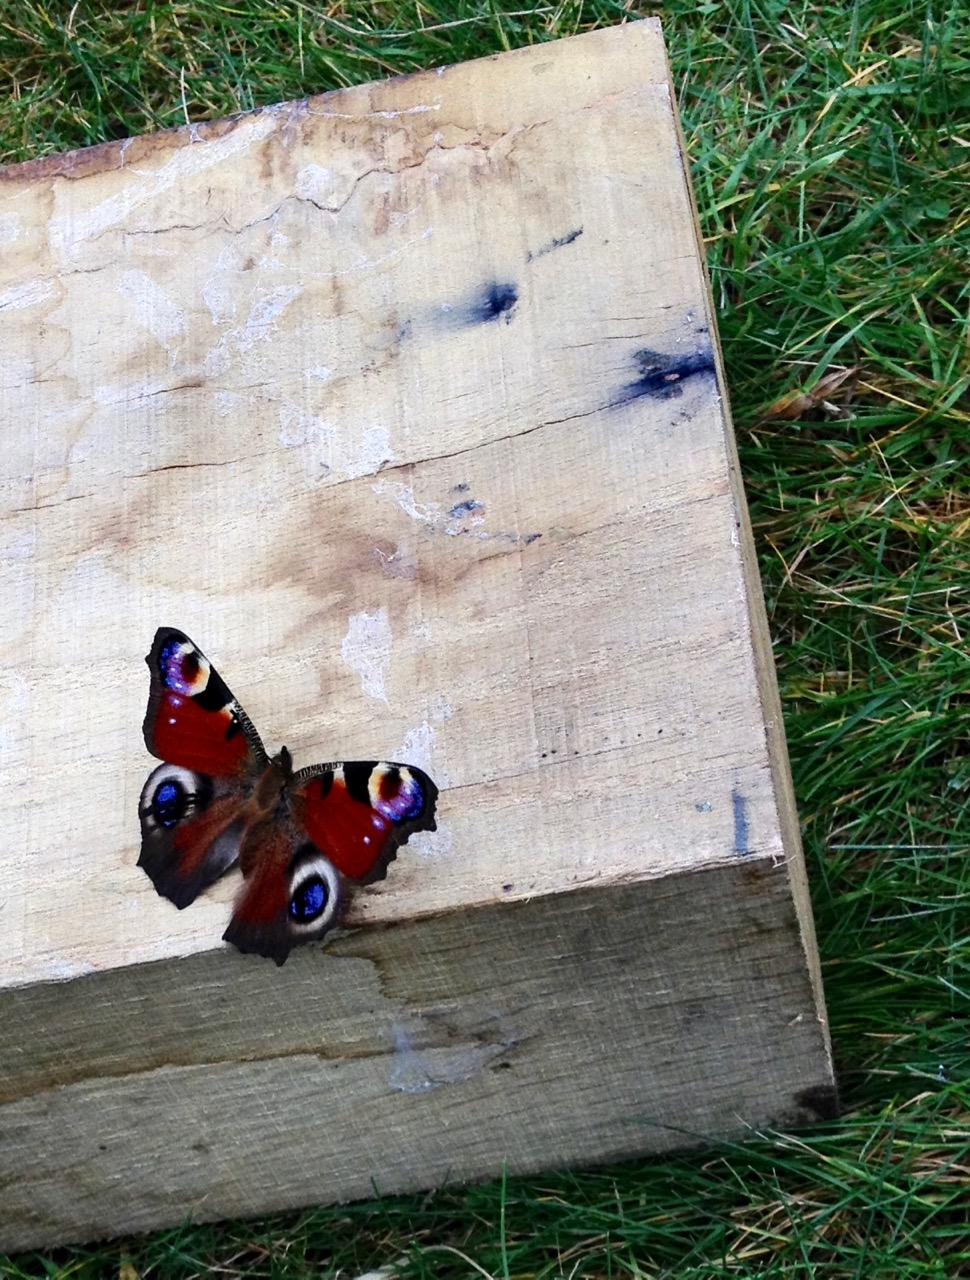 We moved some wood, making a turf seat, and disturbed this hibernating peacock butterfly. It slowly flapped its wings for several minutes, making a strange noise, so we put it back under the woodpile to have a longer 'sleep'.